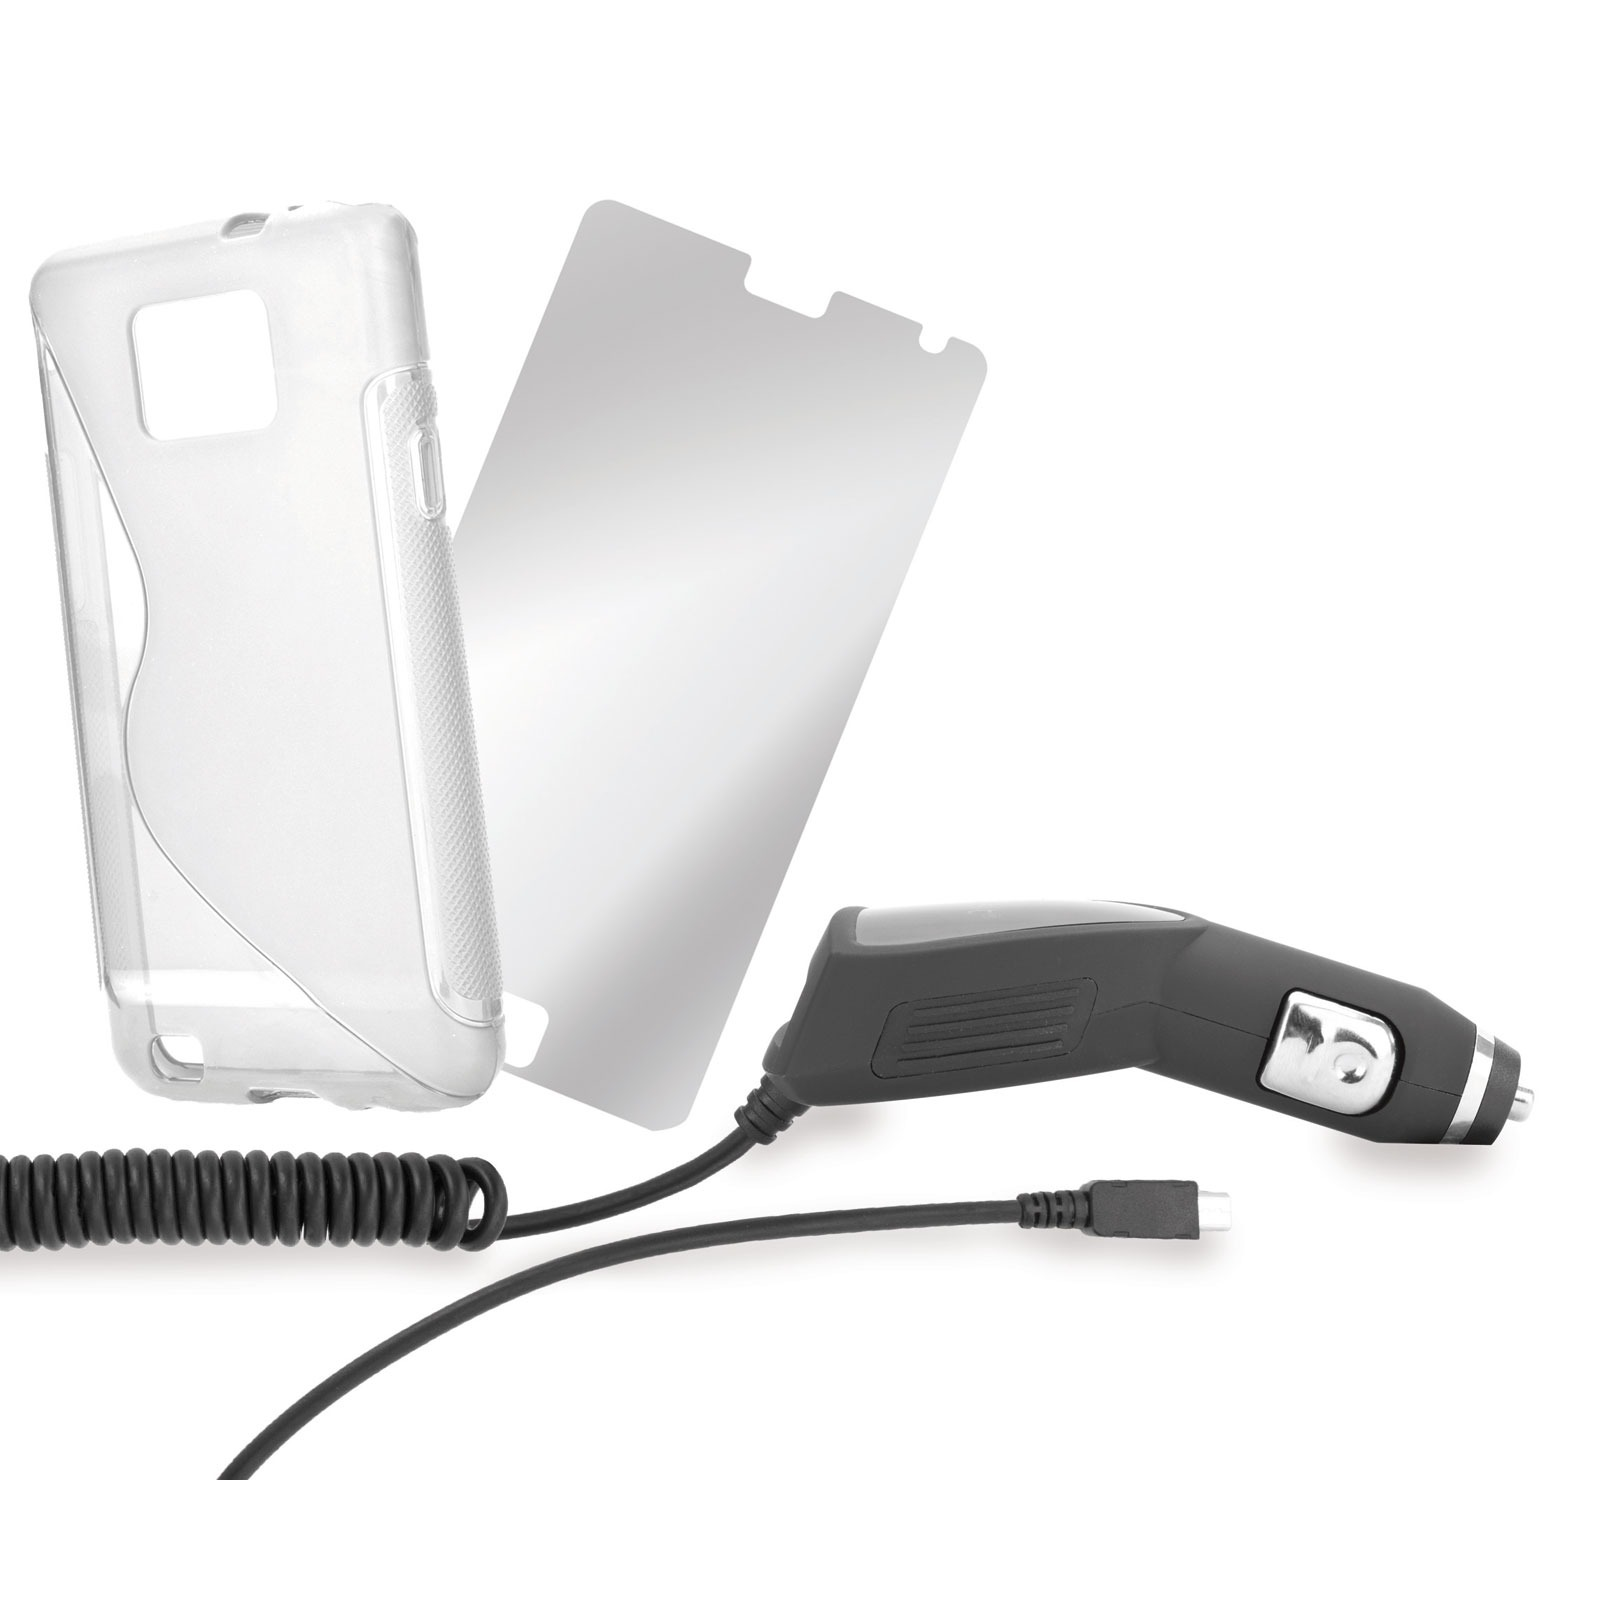 Pack accessoires xqisit Galaxy SII Starterset Kit Chargeur voiture + TPU Sleeve + Protection d'écran pour Samsung Galaxy SII